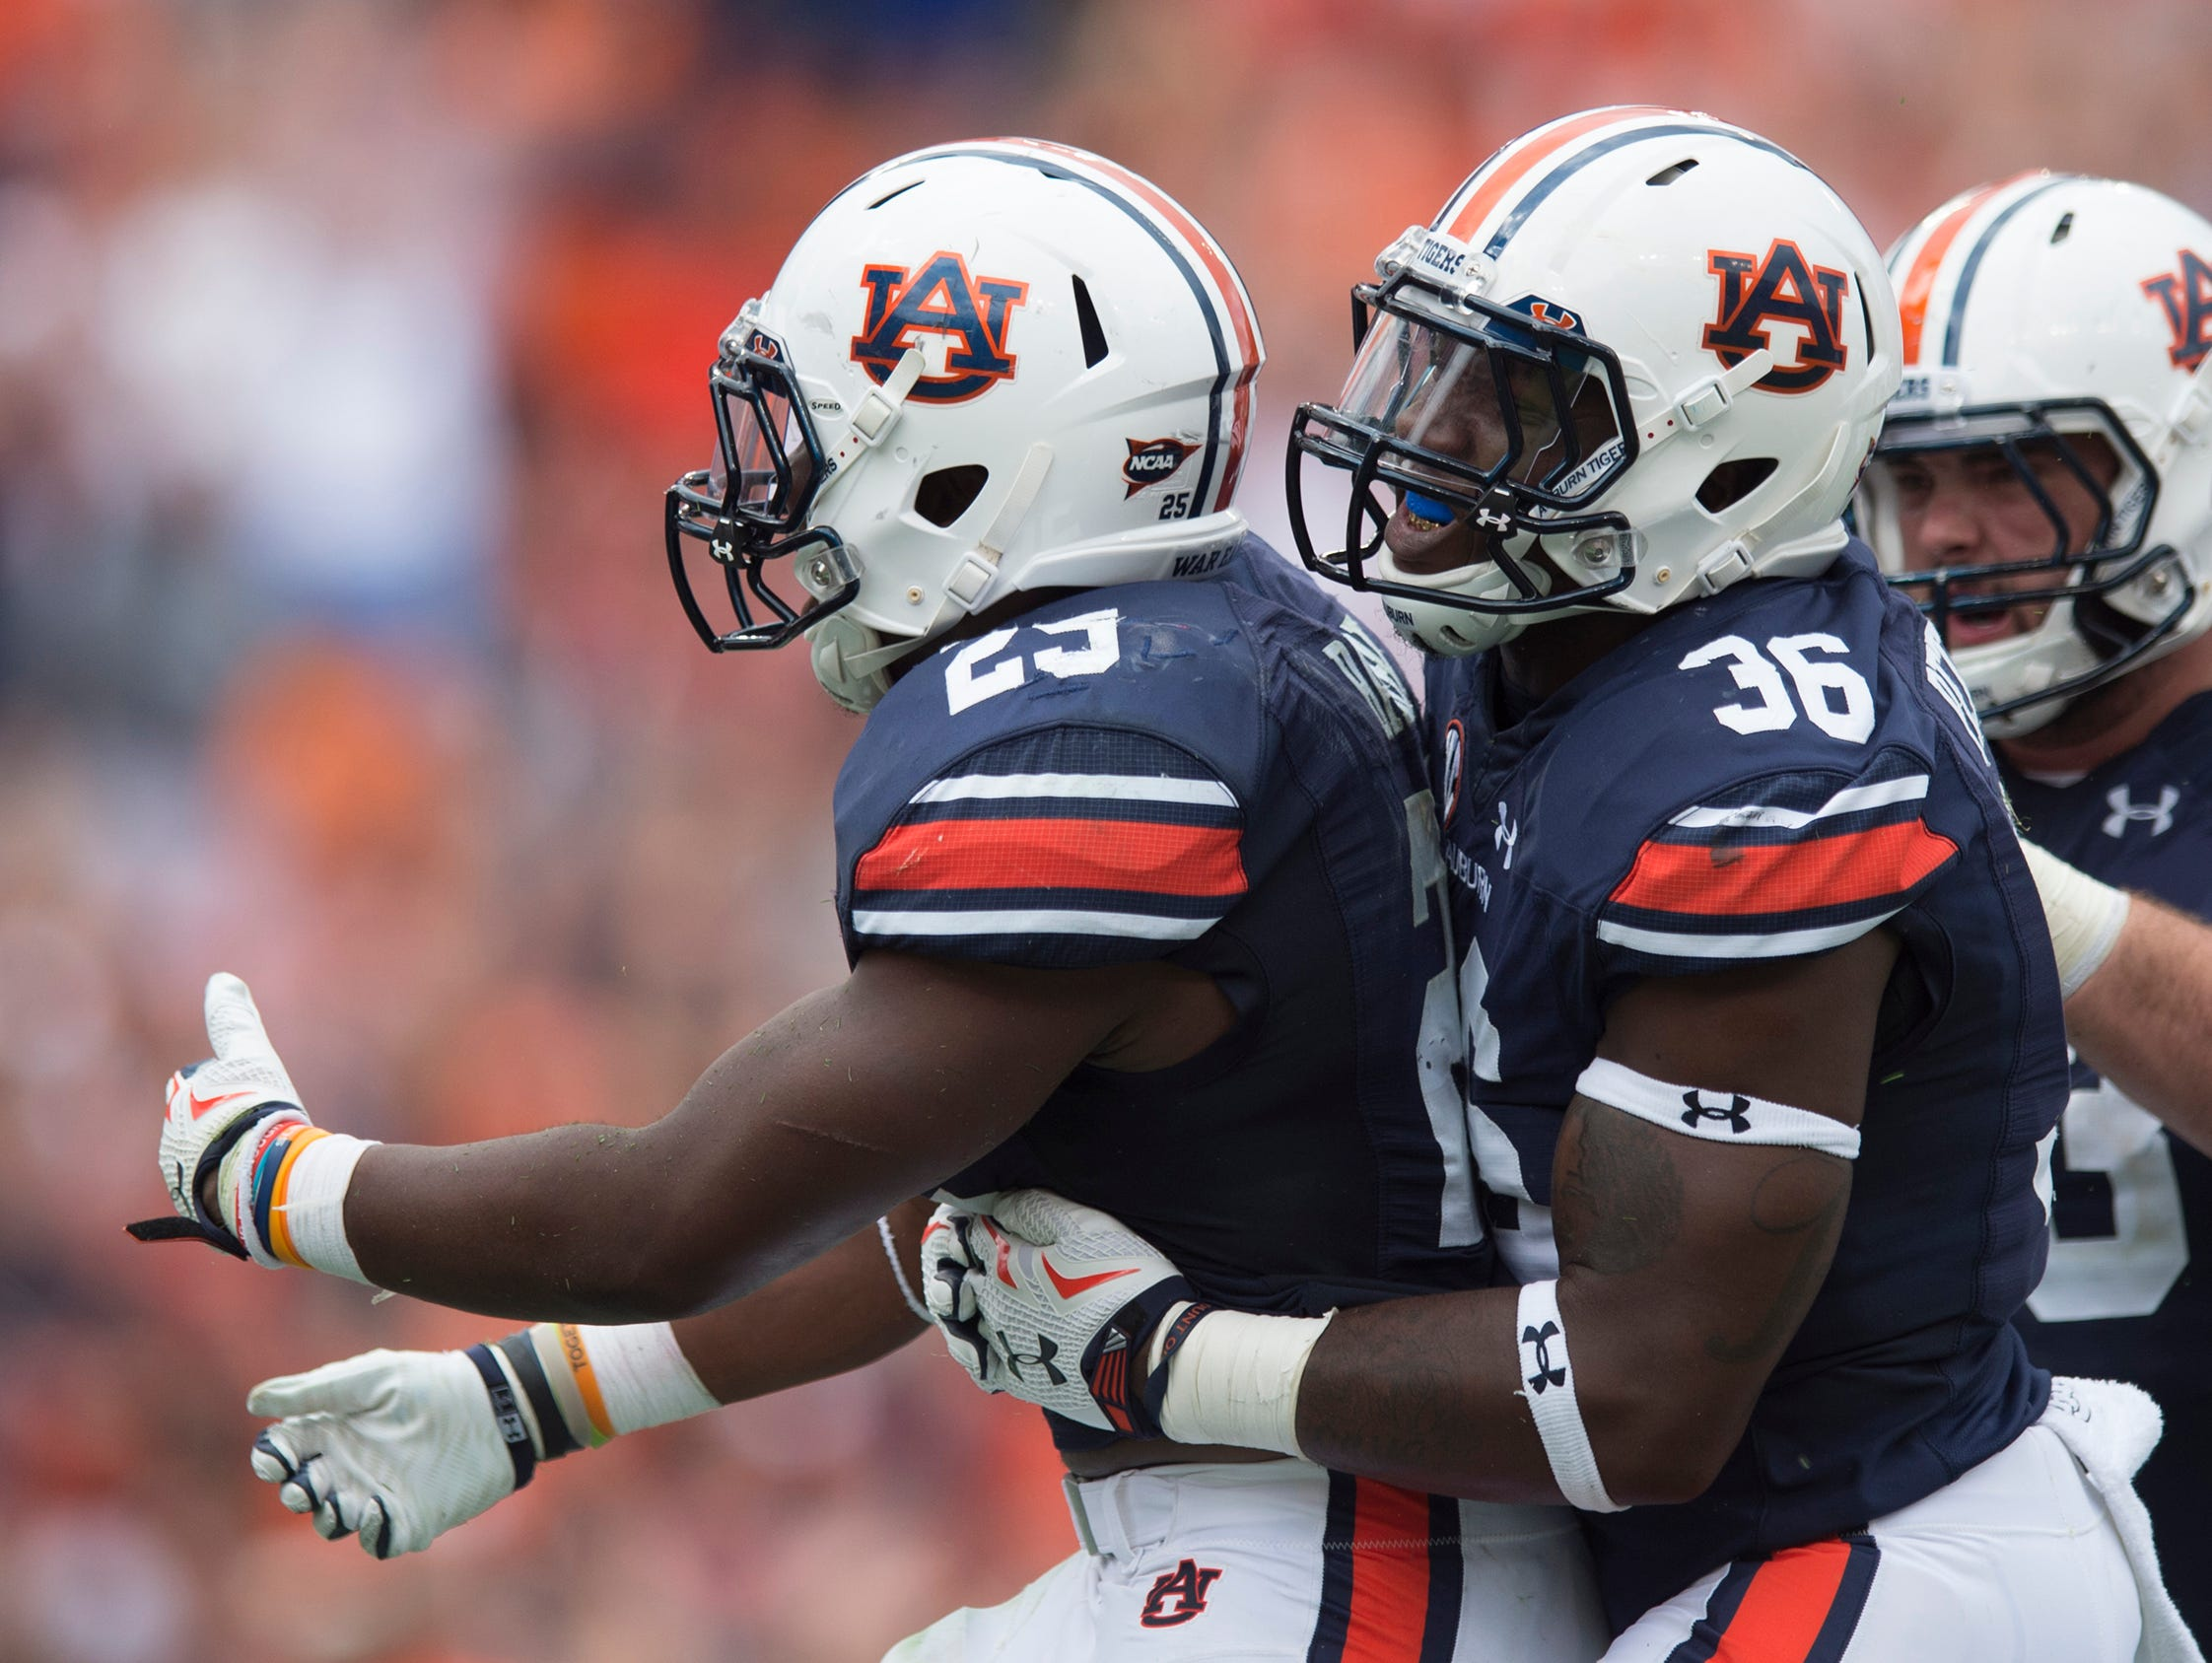 Auburn Tigers running back Peyton Barber (25) celebrates with Auburn Tigers fullback Kamryn Pettway (36) after scoring touchdown during overtime of the NCAA Auburn vs. Jacksonville State on Saturday, Sept. 12, 2015, in at Jordan-Hare Stadium in Auburn, Ala.